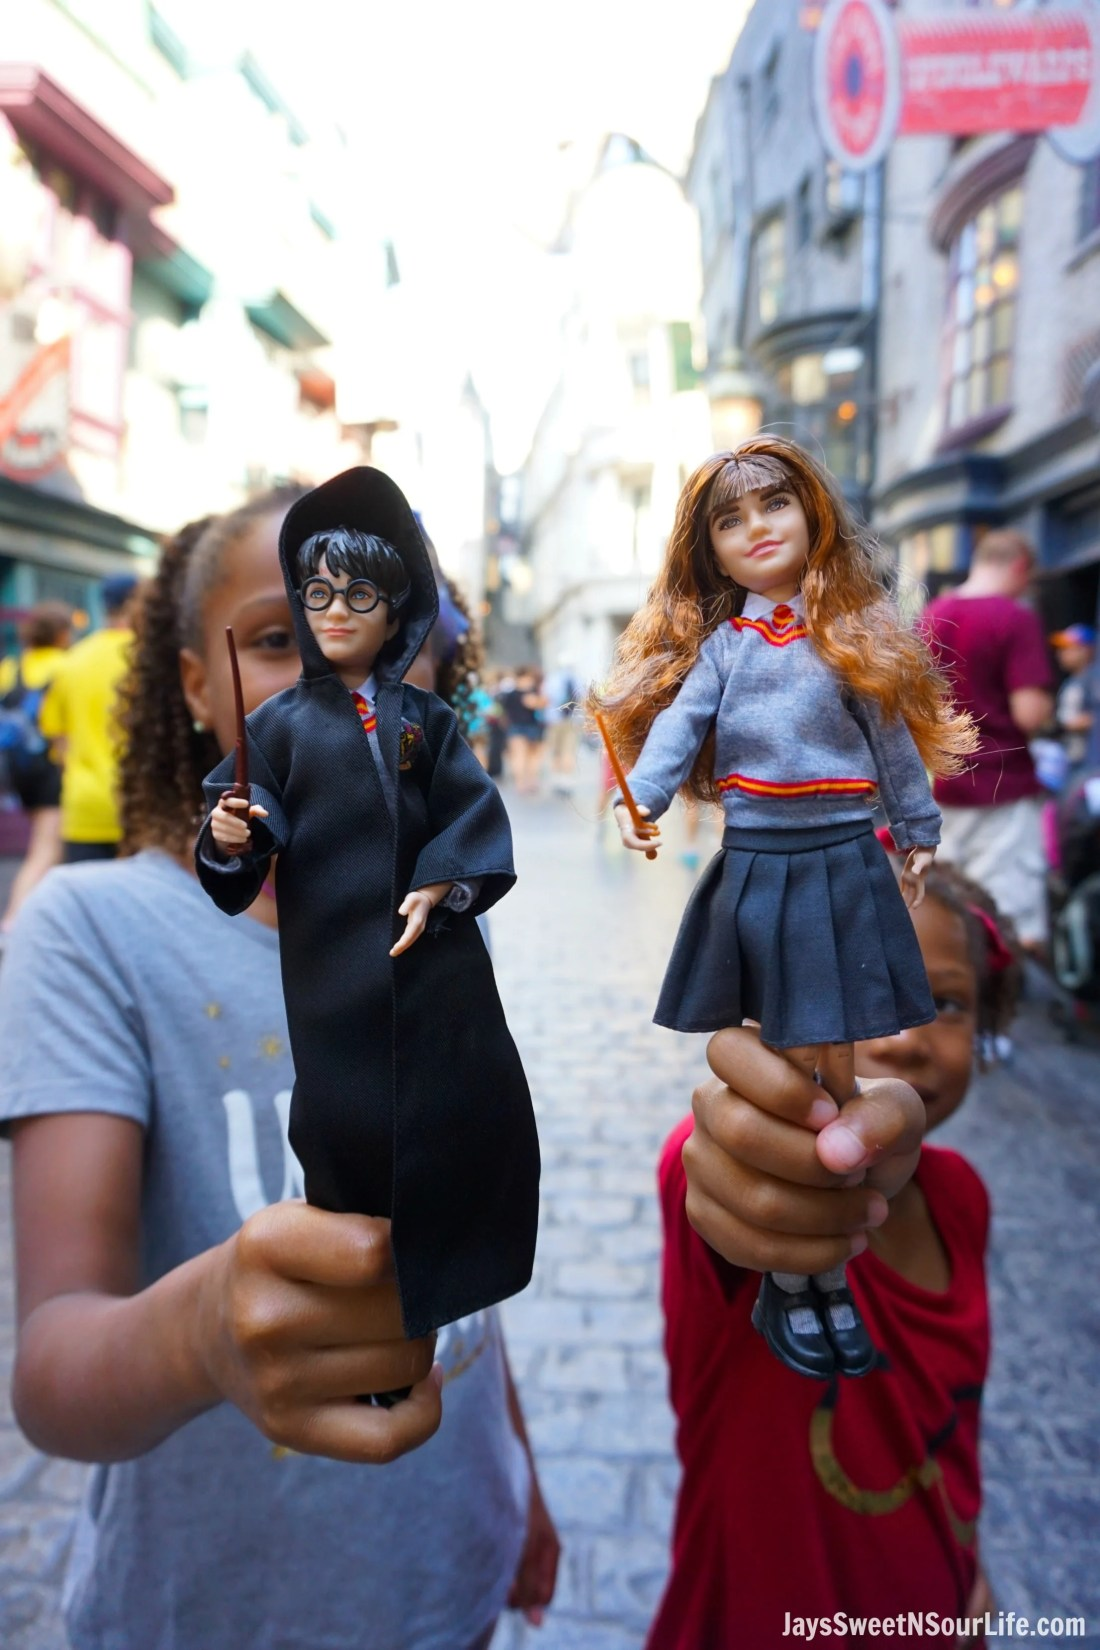 Harry Potter Dolls Girls Diagon Alley. Learn more aboutthese collectable Harry Potter Dolls at Jayssweetnsourlife.com .